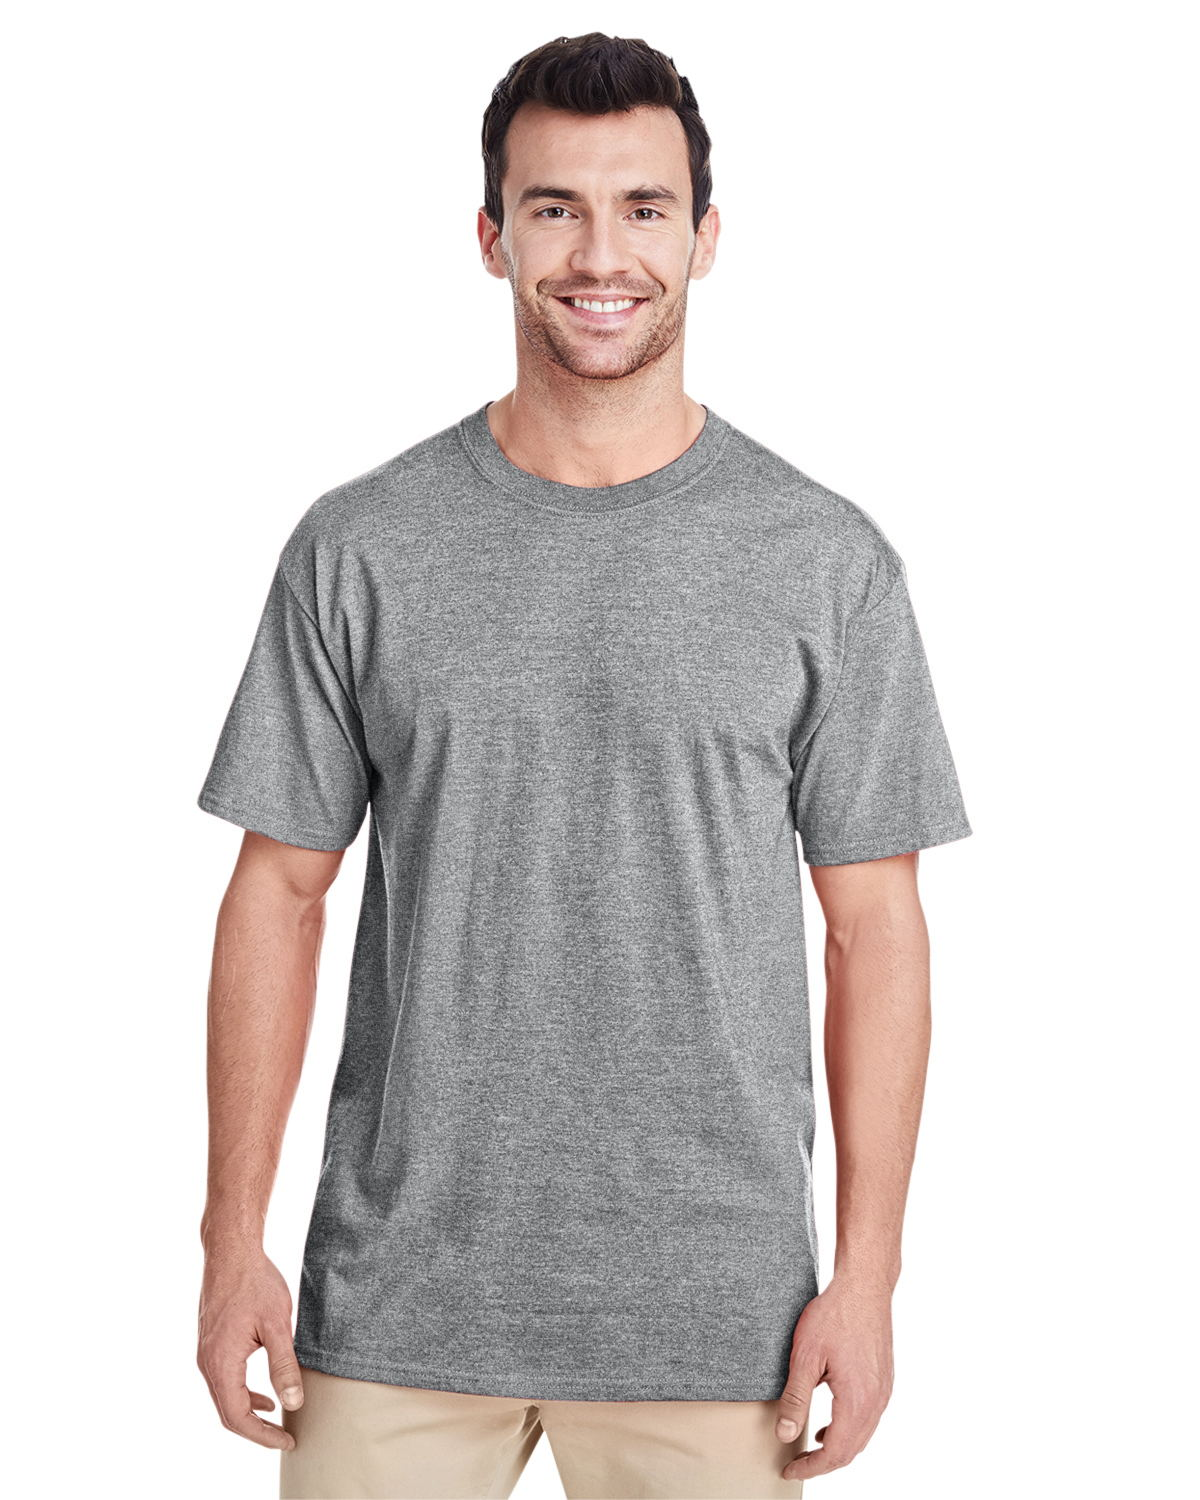 Ringspun T Shirt >> Jerzees 460r Dri Power Ringspun T Shirt 3 09 Men S T Shirts